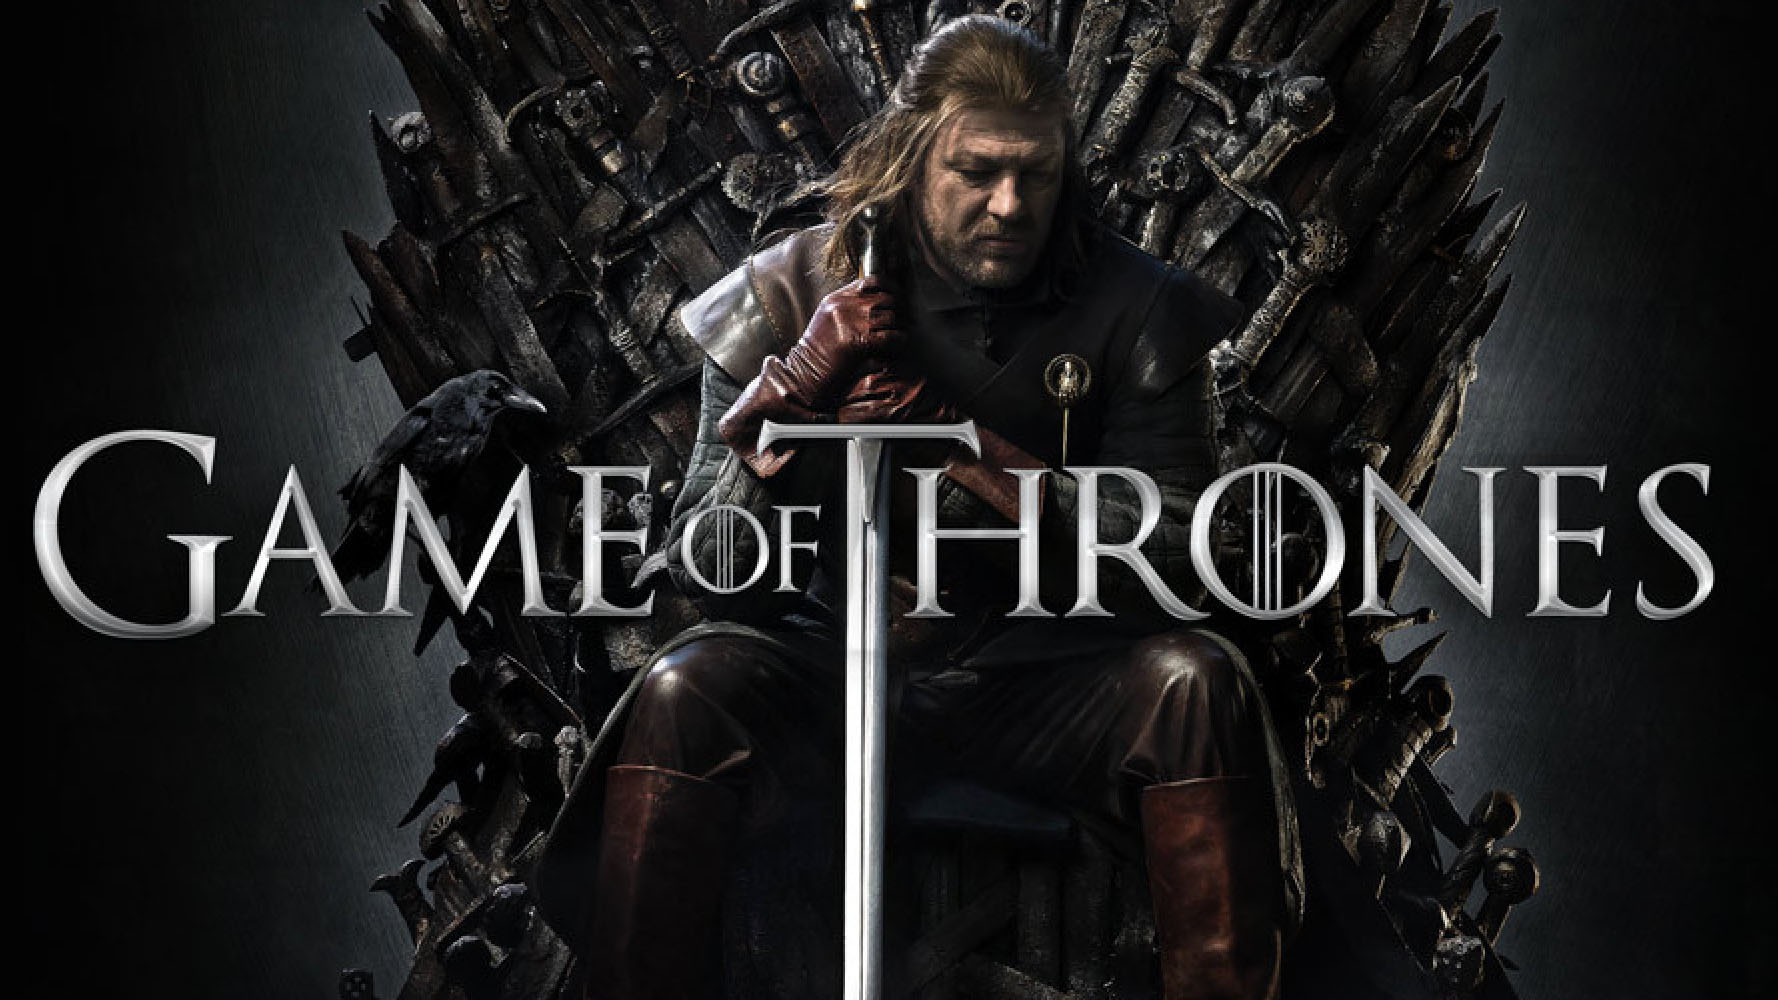 Game of Thrones Full Movie Download, Game of Thrones Full Movie HD Download, Game of Thrones Full HD Movie Download, Game of Thrones Full HD Download, Download Game of Thrones Full Movie, Game of Thrones HD quality Full Movie Free Download, Free Download Game of Thrones Movie ,